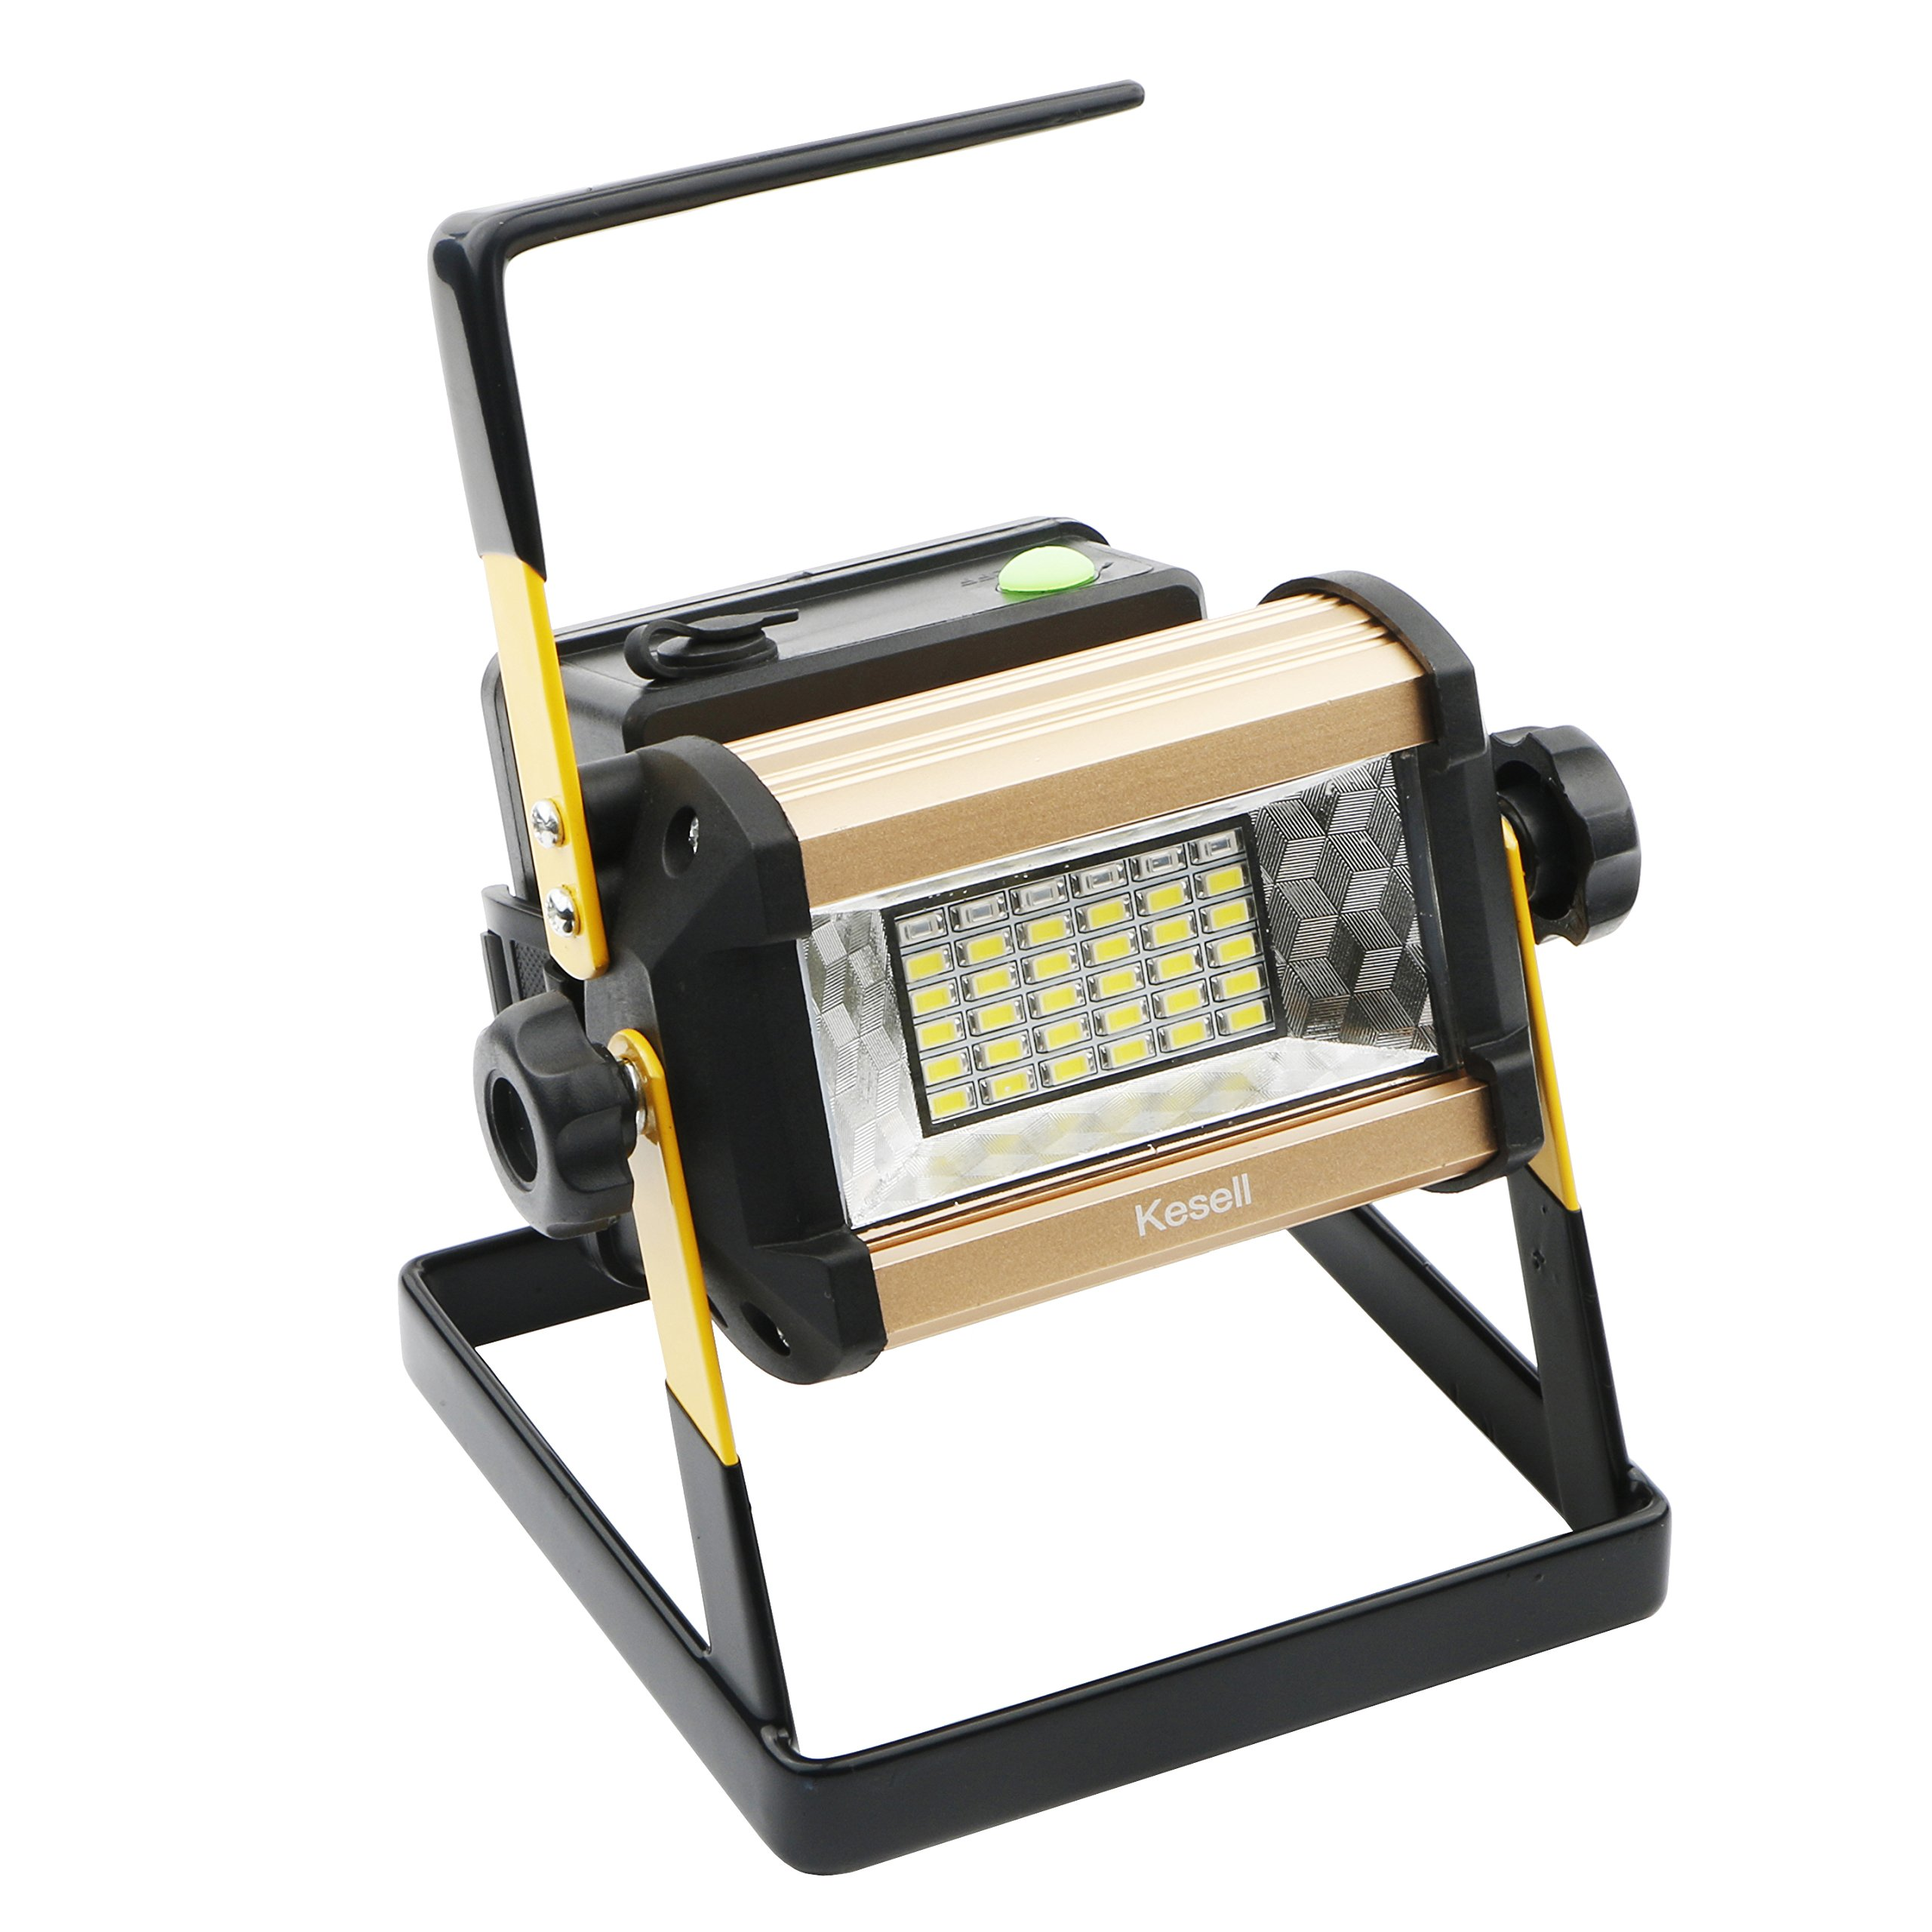 LED Spotlights / Portable Cordless 36 LED Flood Lights, 50W, 2400LM, 3 Modes Lamp, Outdoor Working Waterproof Lamp, Special SOS Mode for Camping, Fishing, Hunting